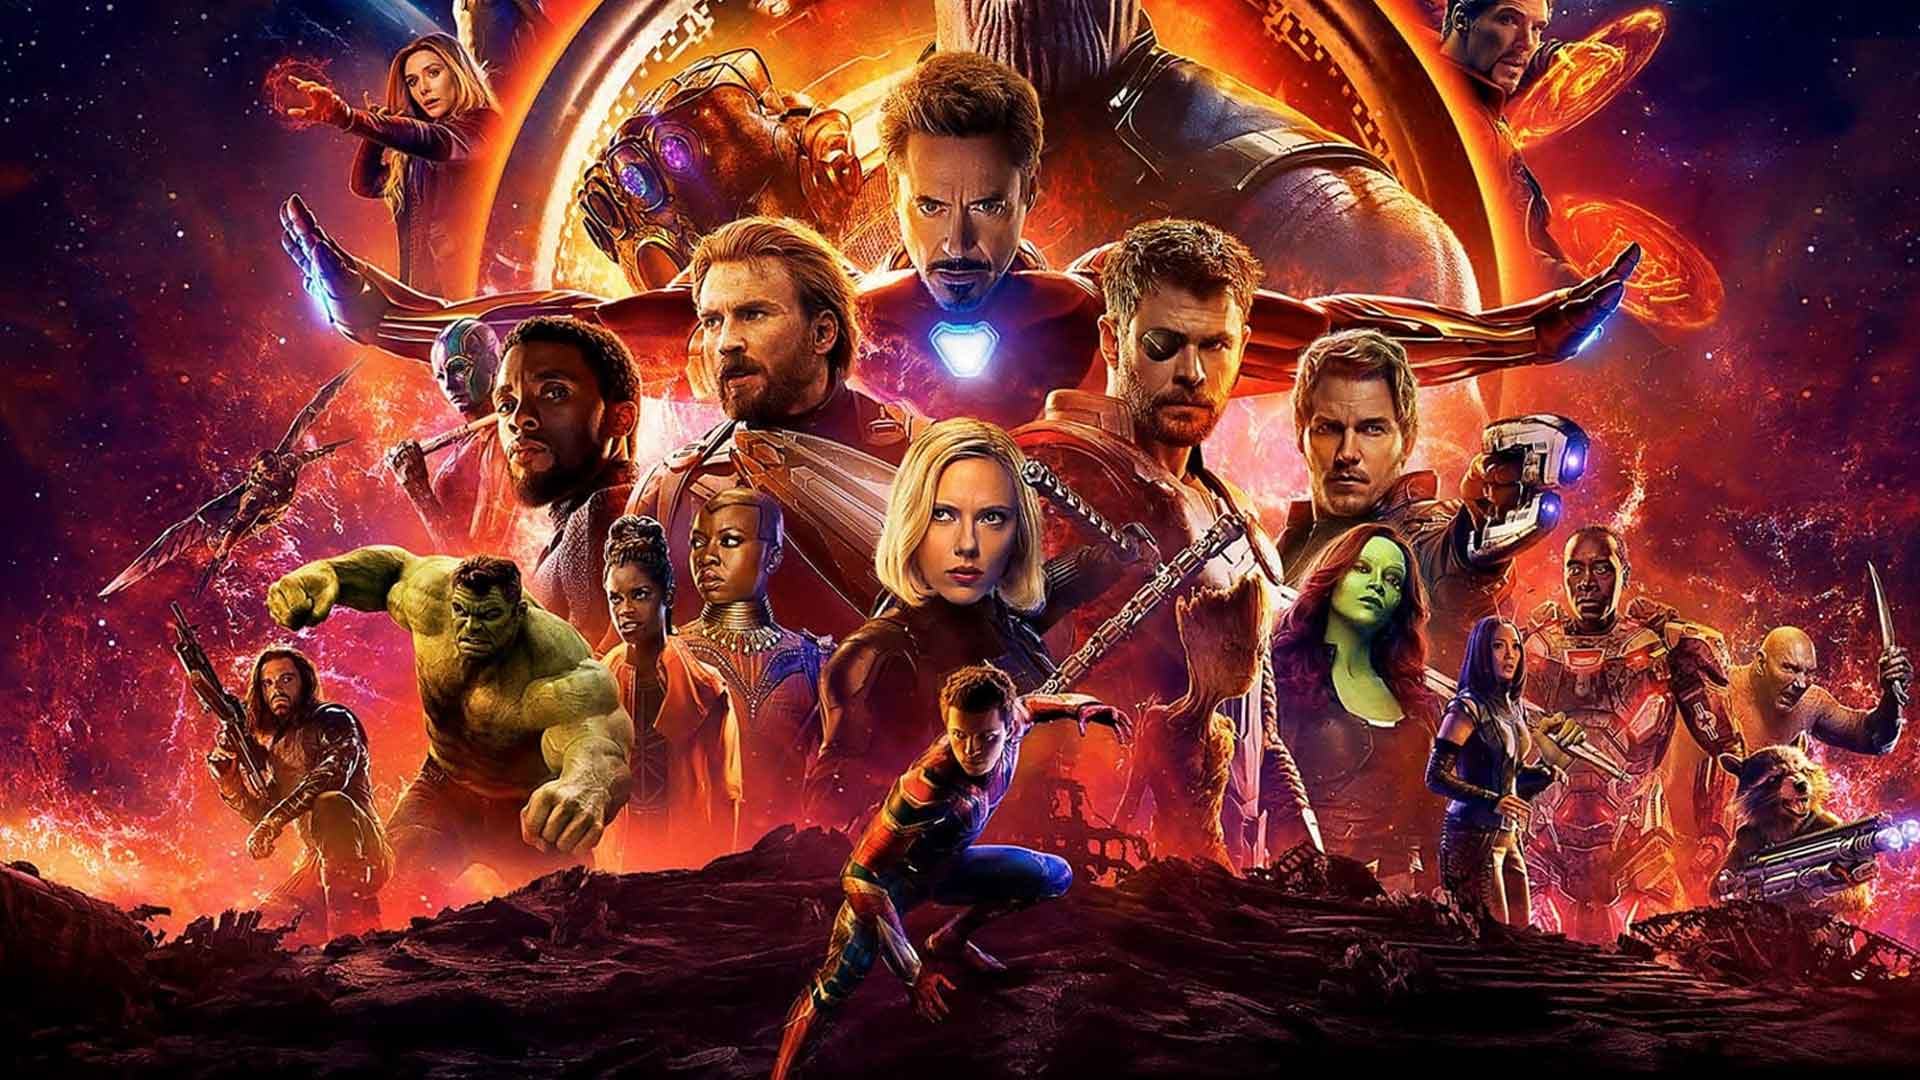 Now it s up to Avengers who have been torn apart due to the tragic events of Captain America Civil War to reunite and stop the destruction of the Earth